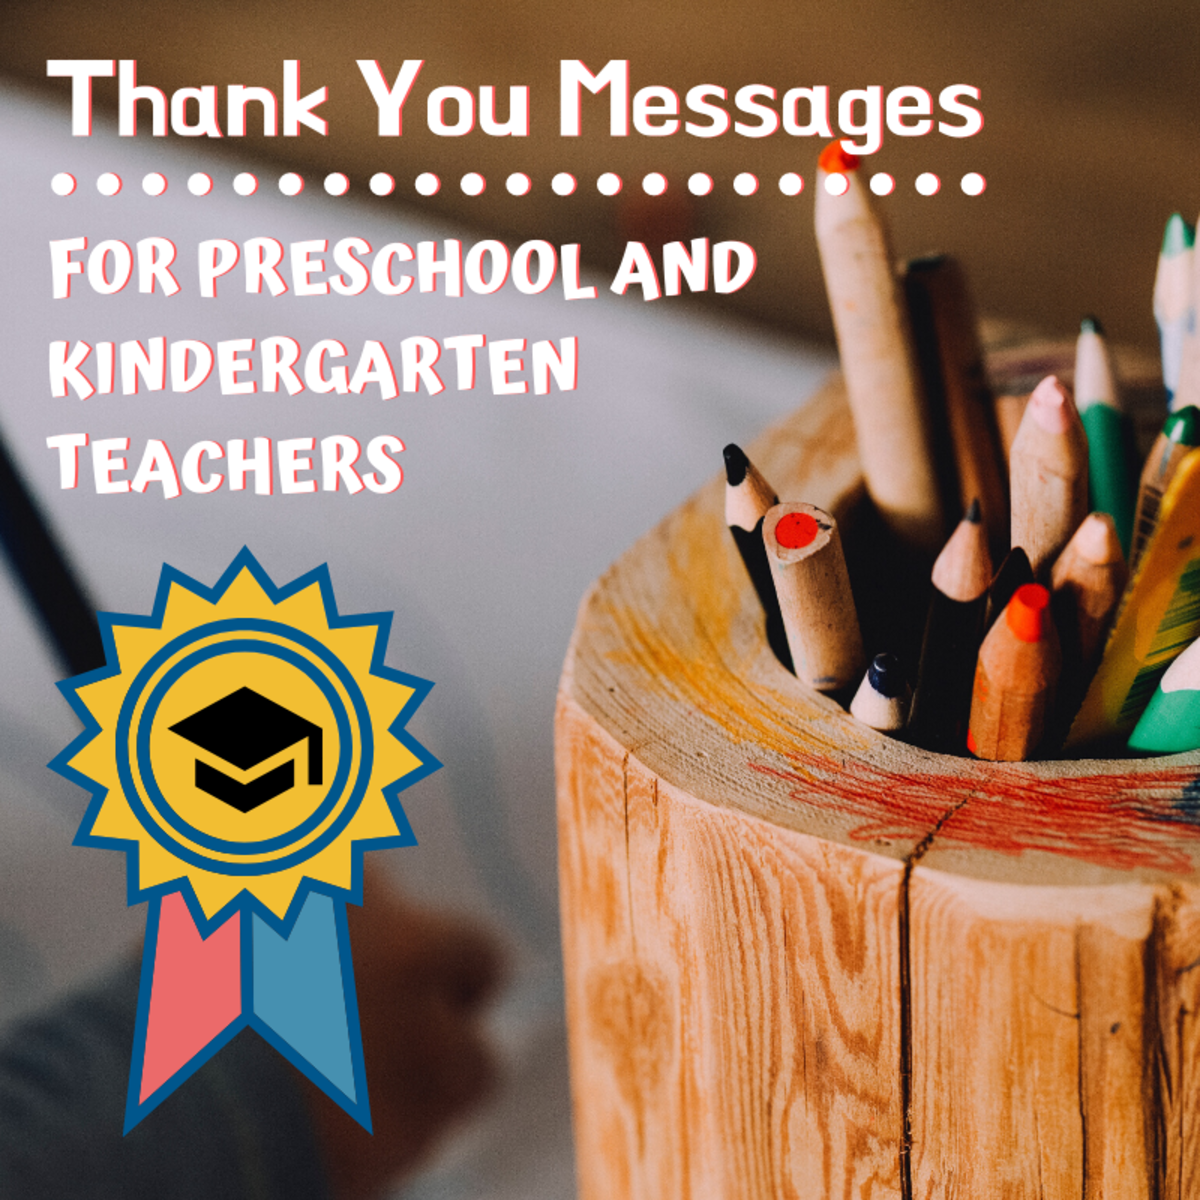 Example Thank You Notes for Preschool or Kindergarten Teachers